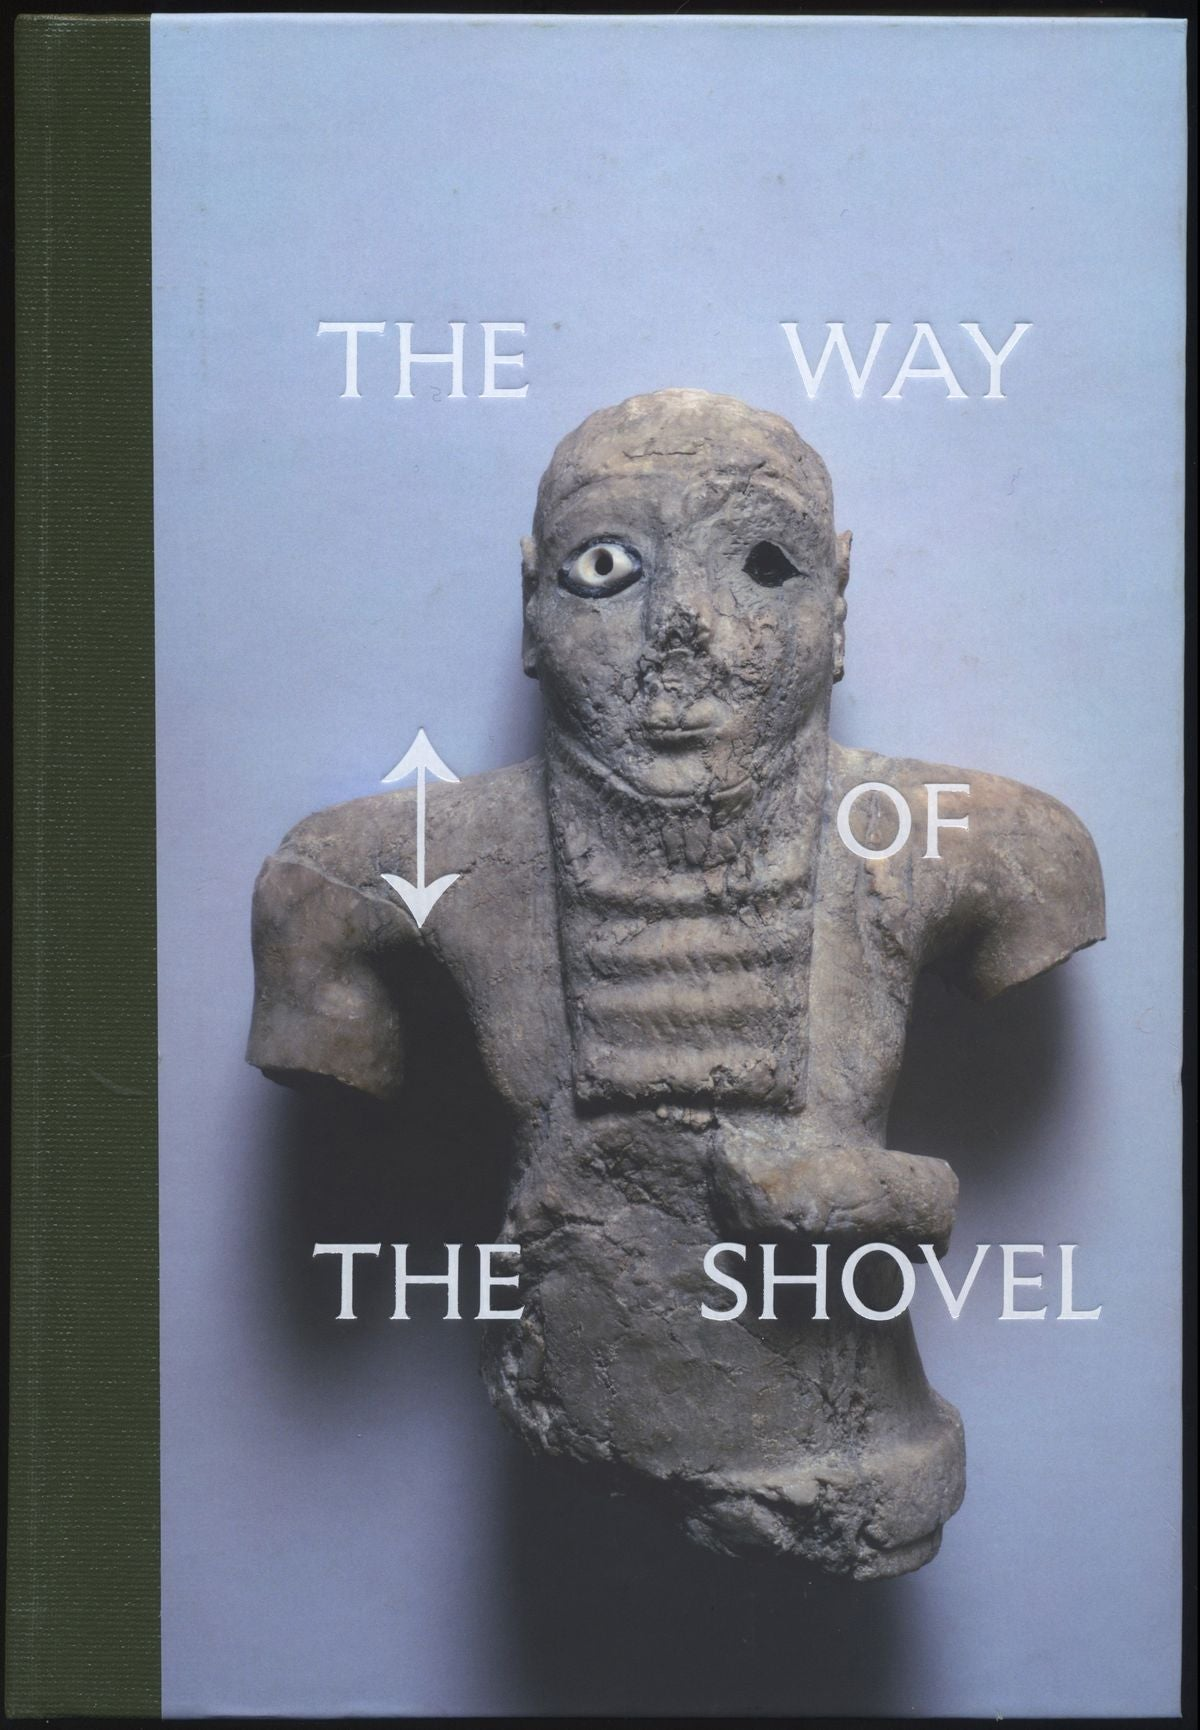 The Way of the Shovel - Book at Kavi Gupta Editions